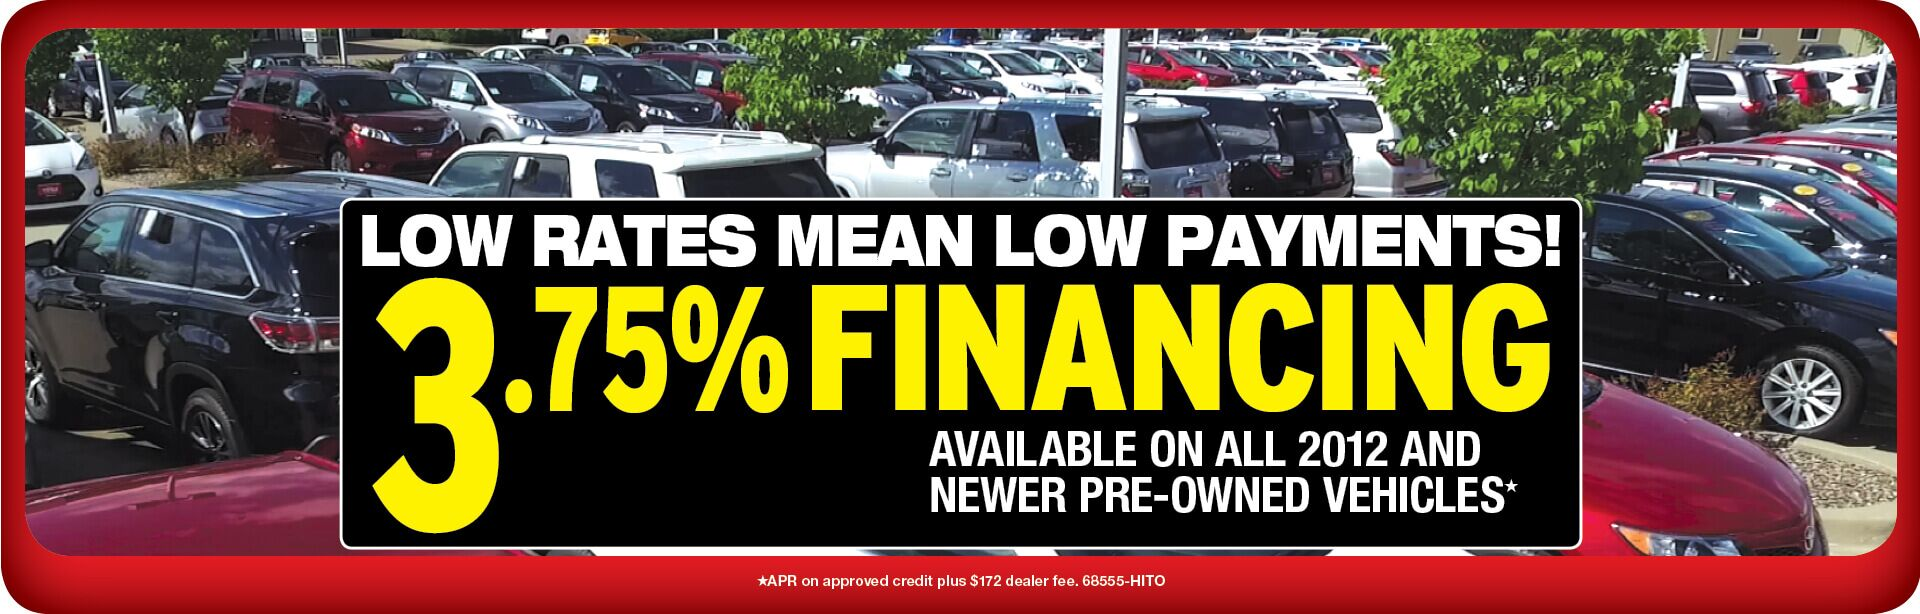 Used Vehicle Financing